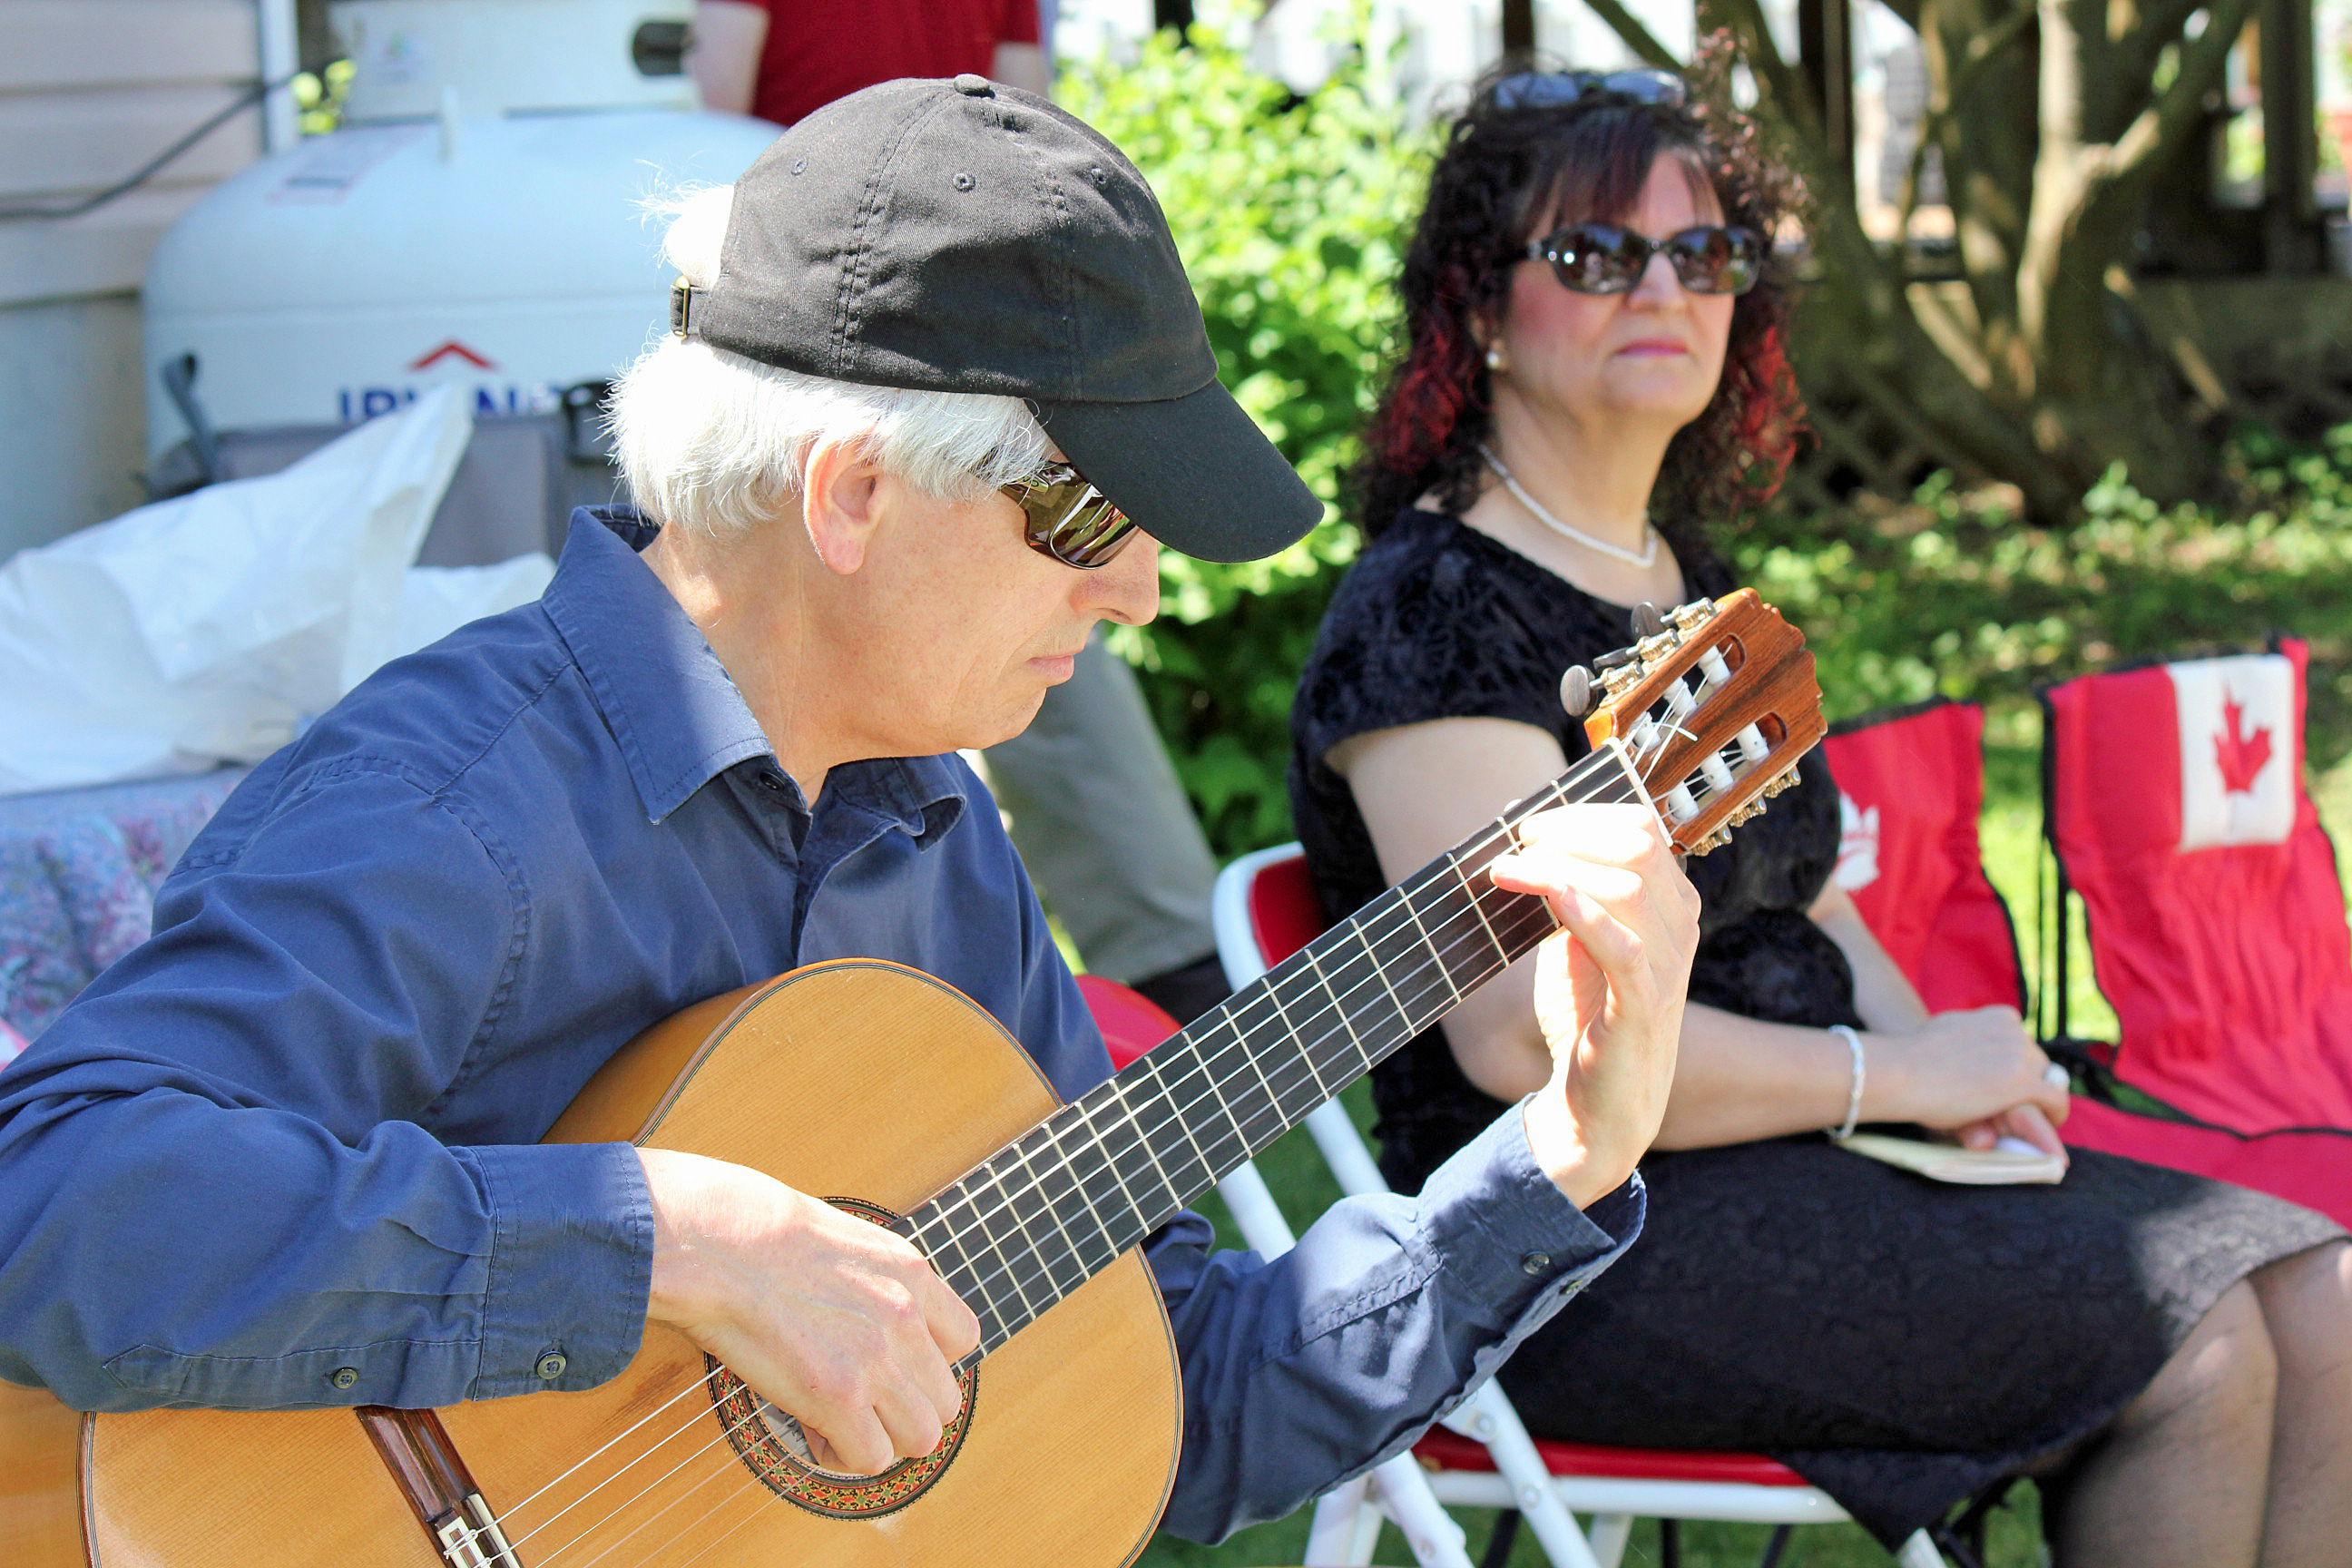 A Bahá'í plays guitar at a holy day commemoration in St. John's.